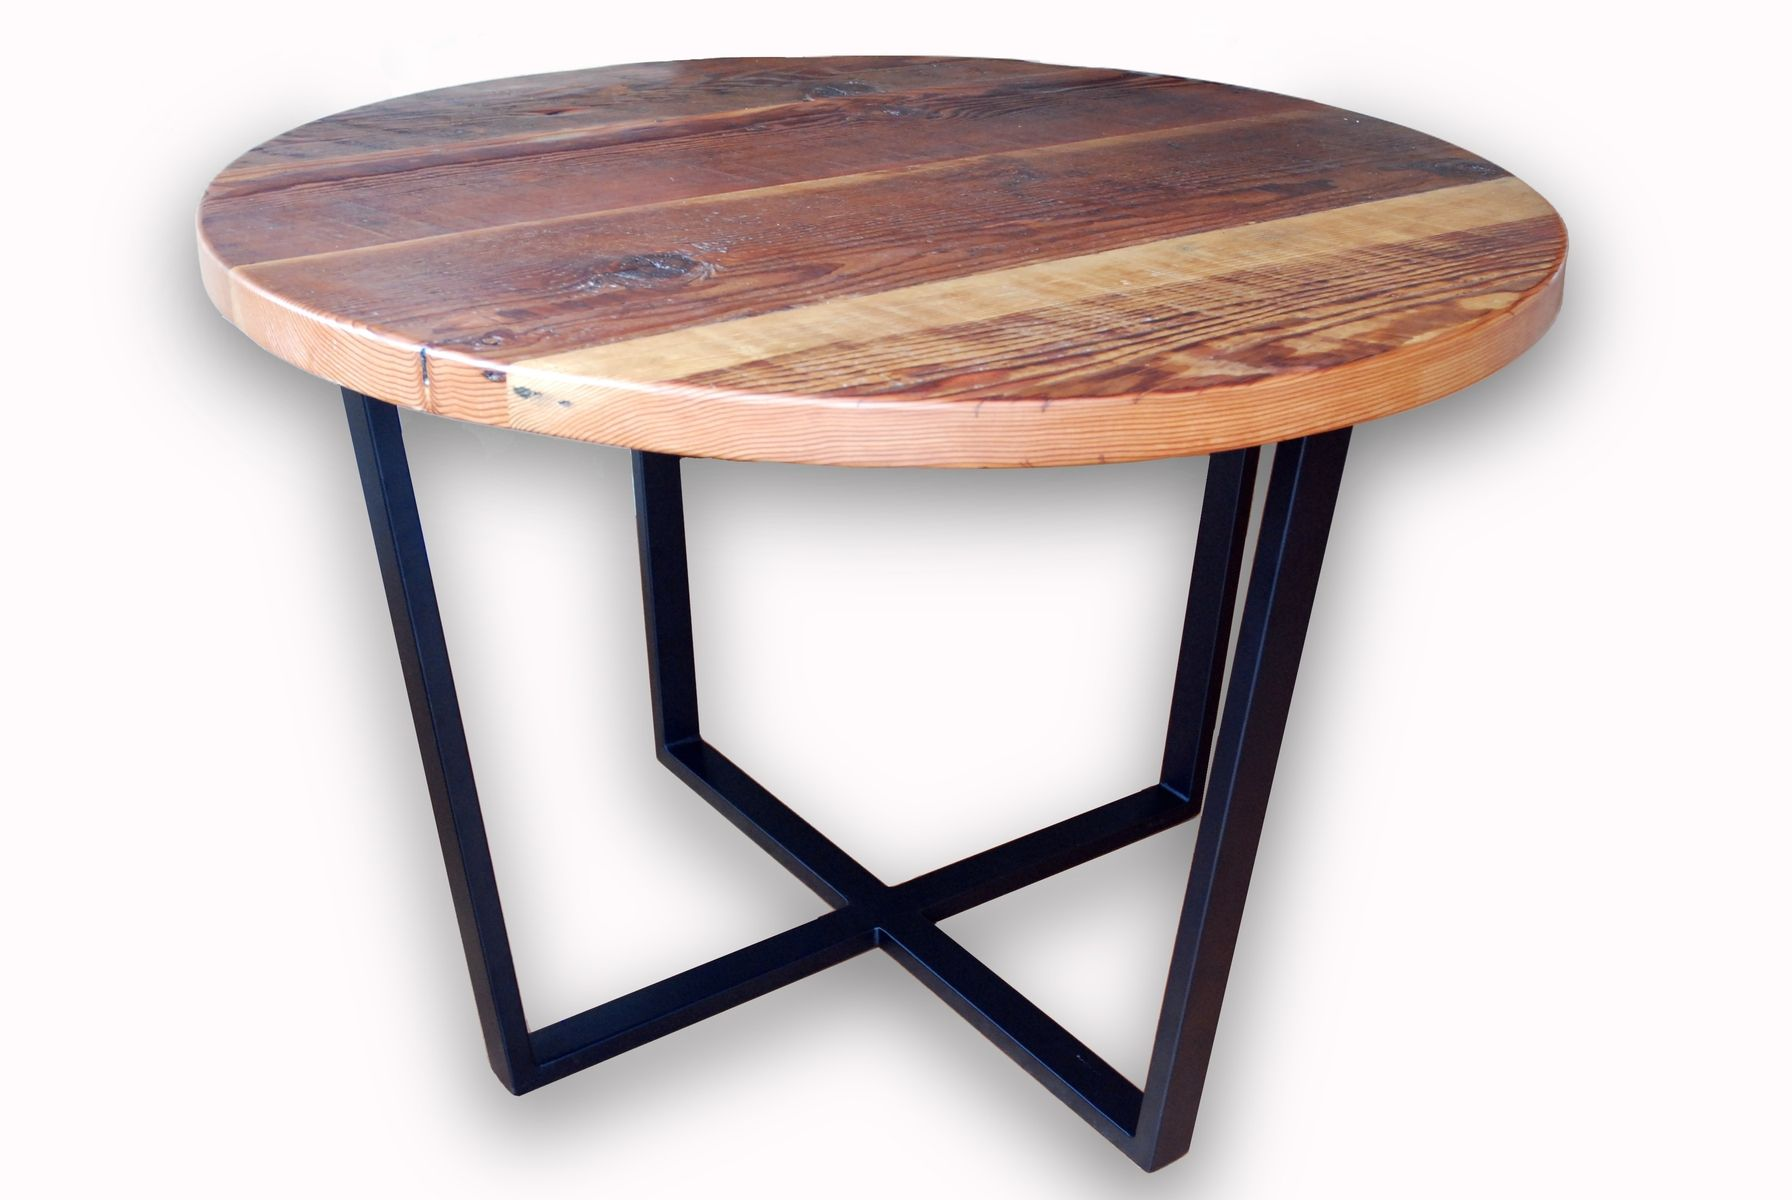 Handmade Reclaimed Timber Round Dining Table By Jonathan